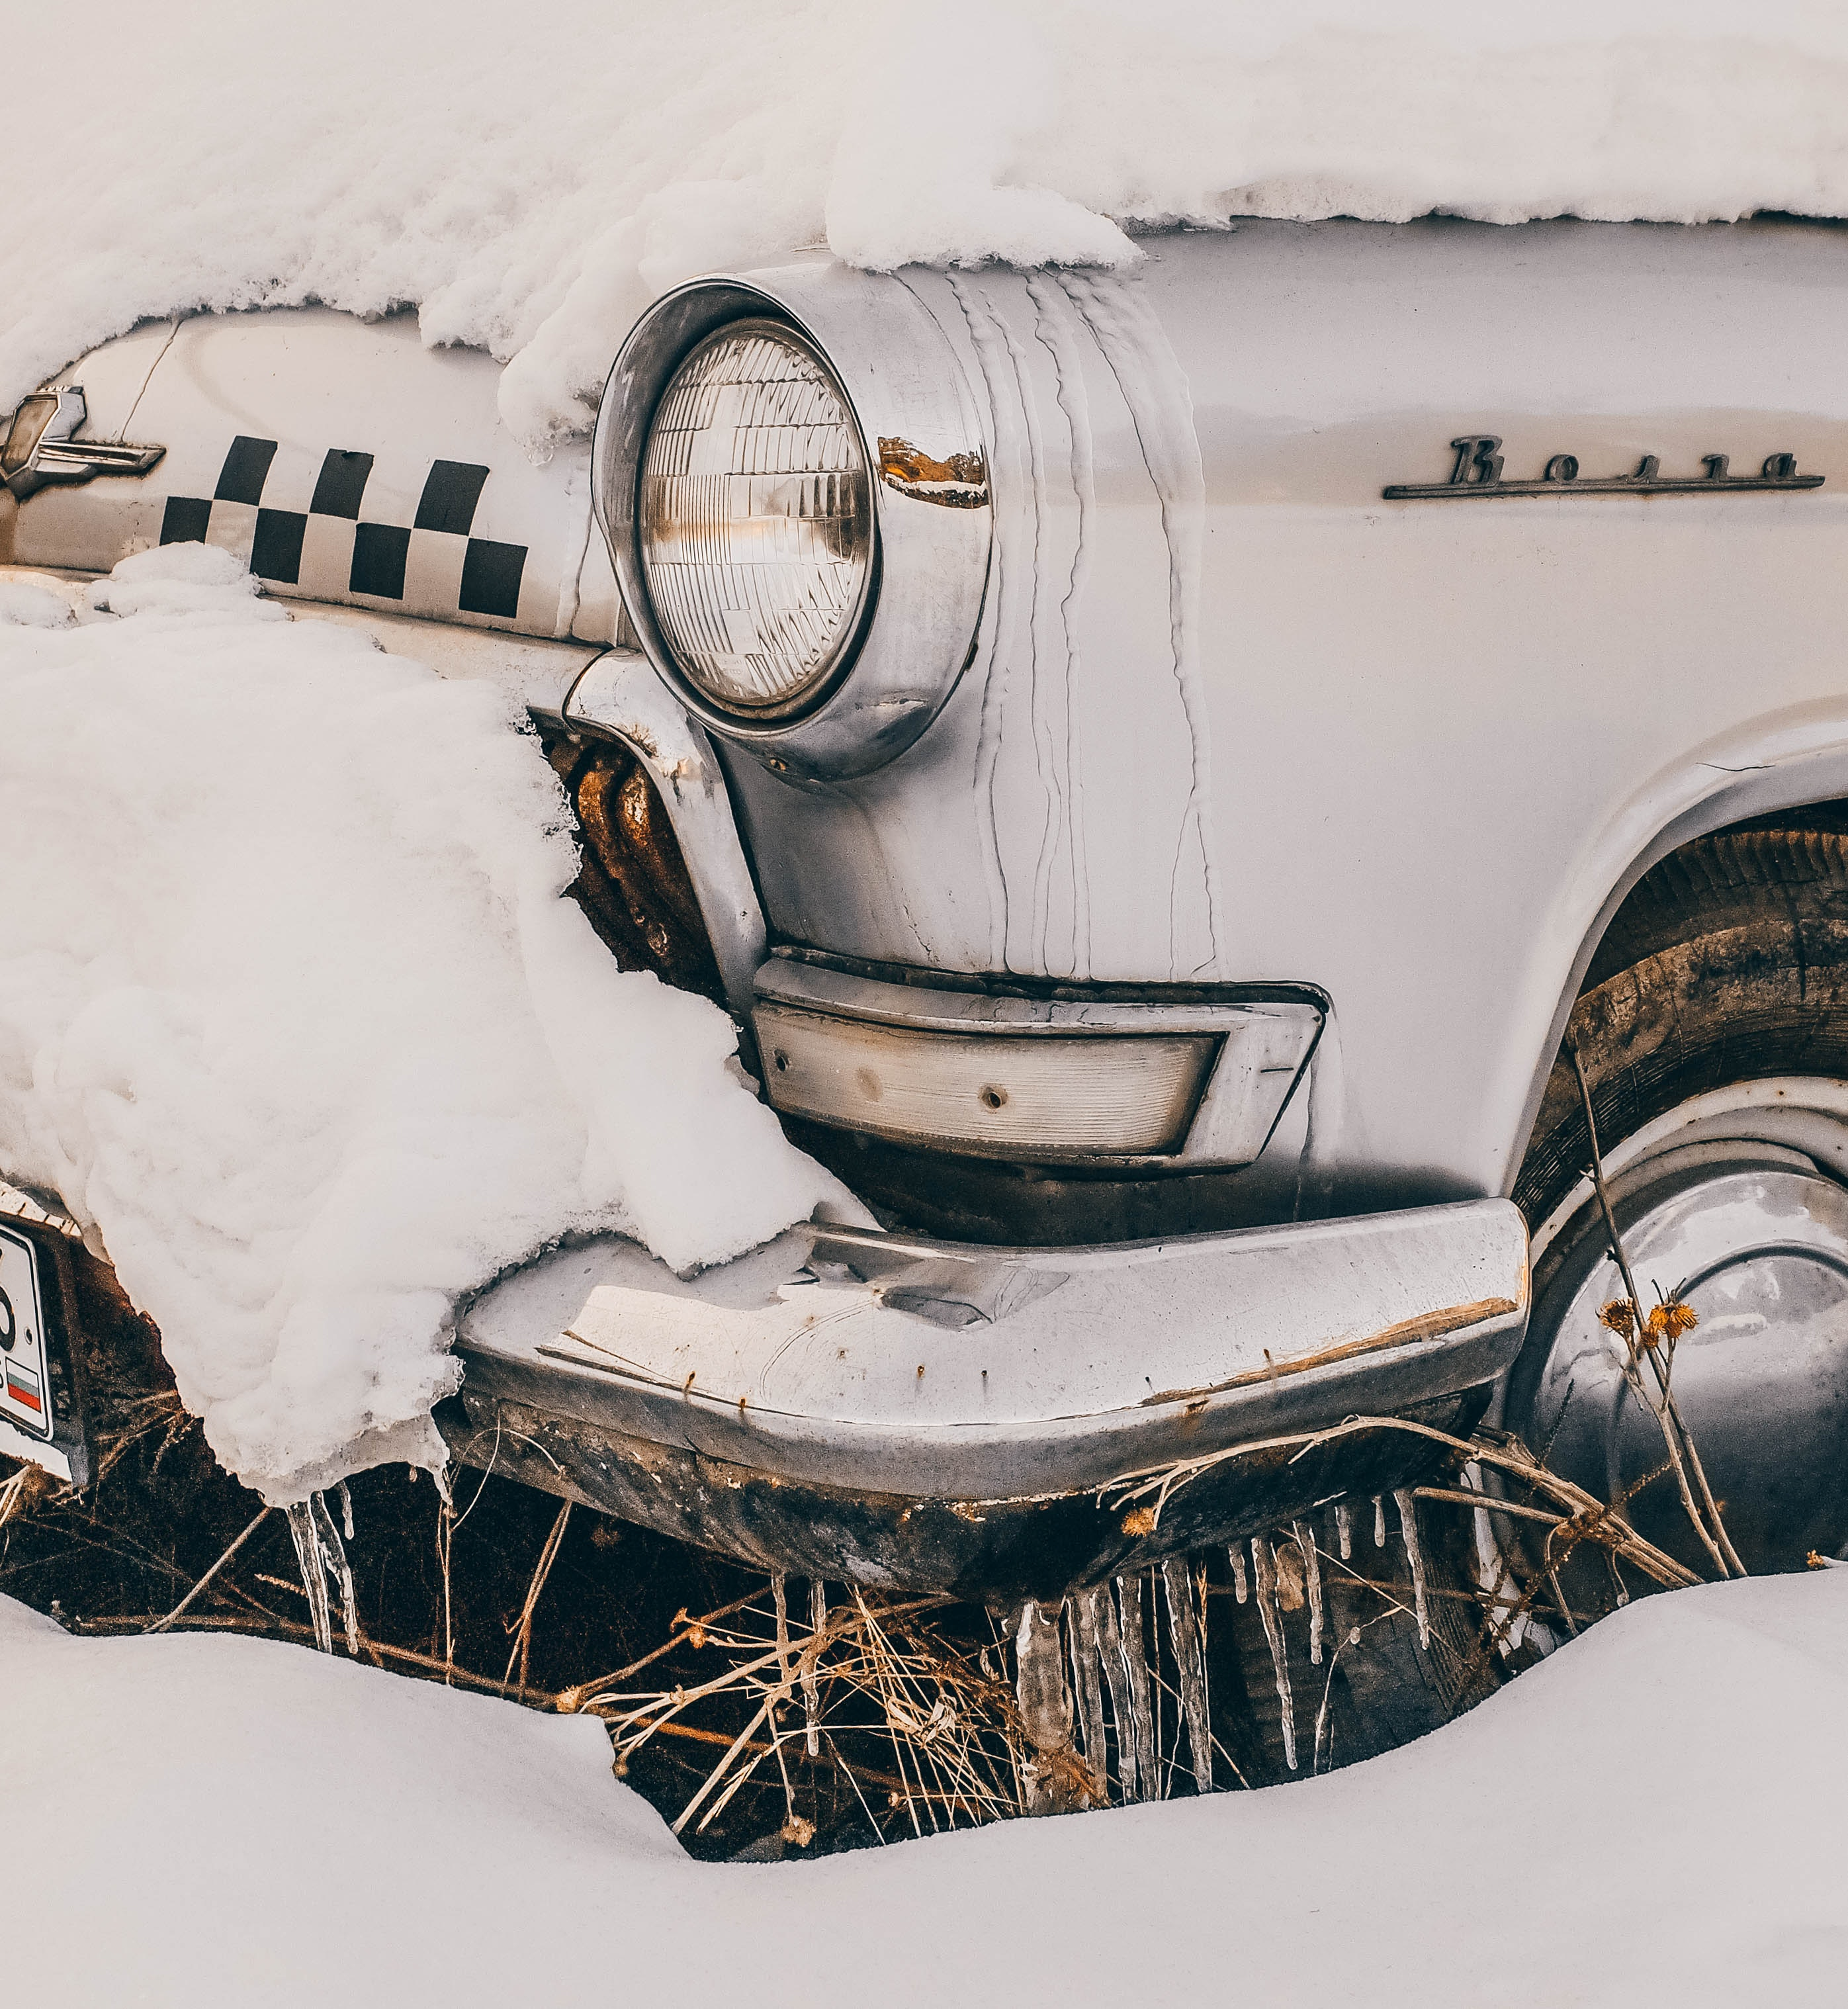 Close-Up Photography of Vintage Car Covered With Snow, Antique, Season, Wheel, Vintage car, HQ Photo